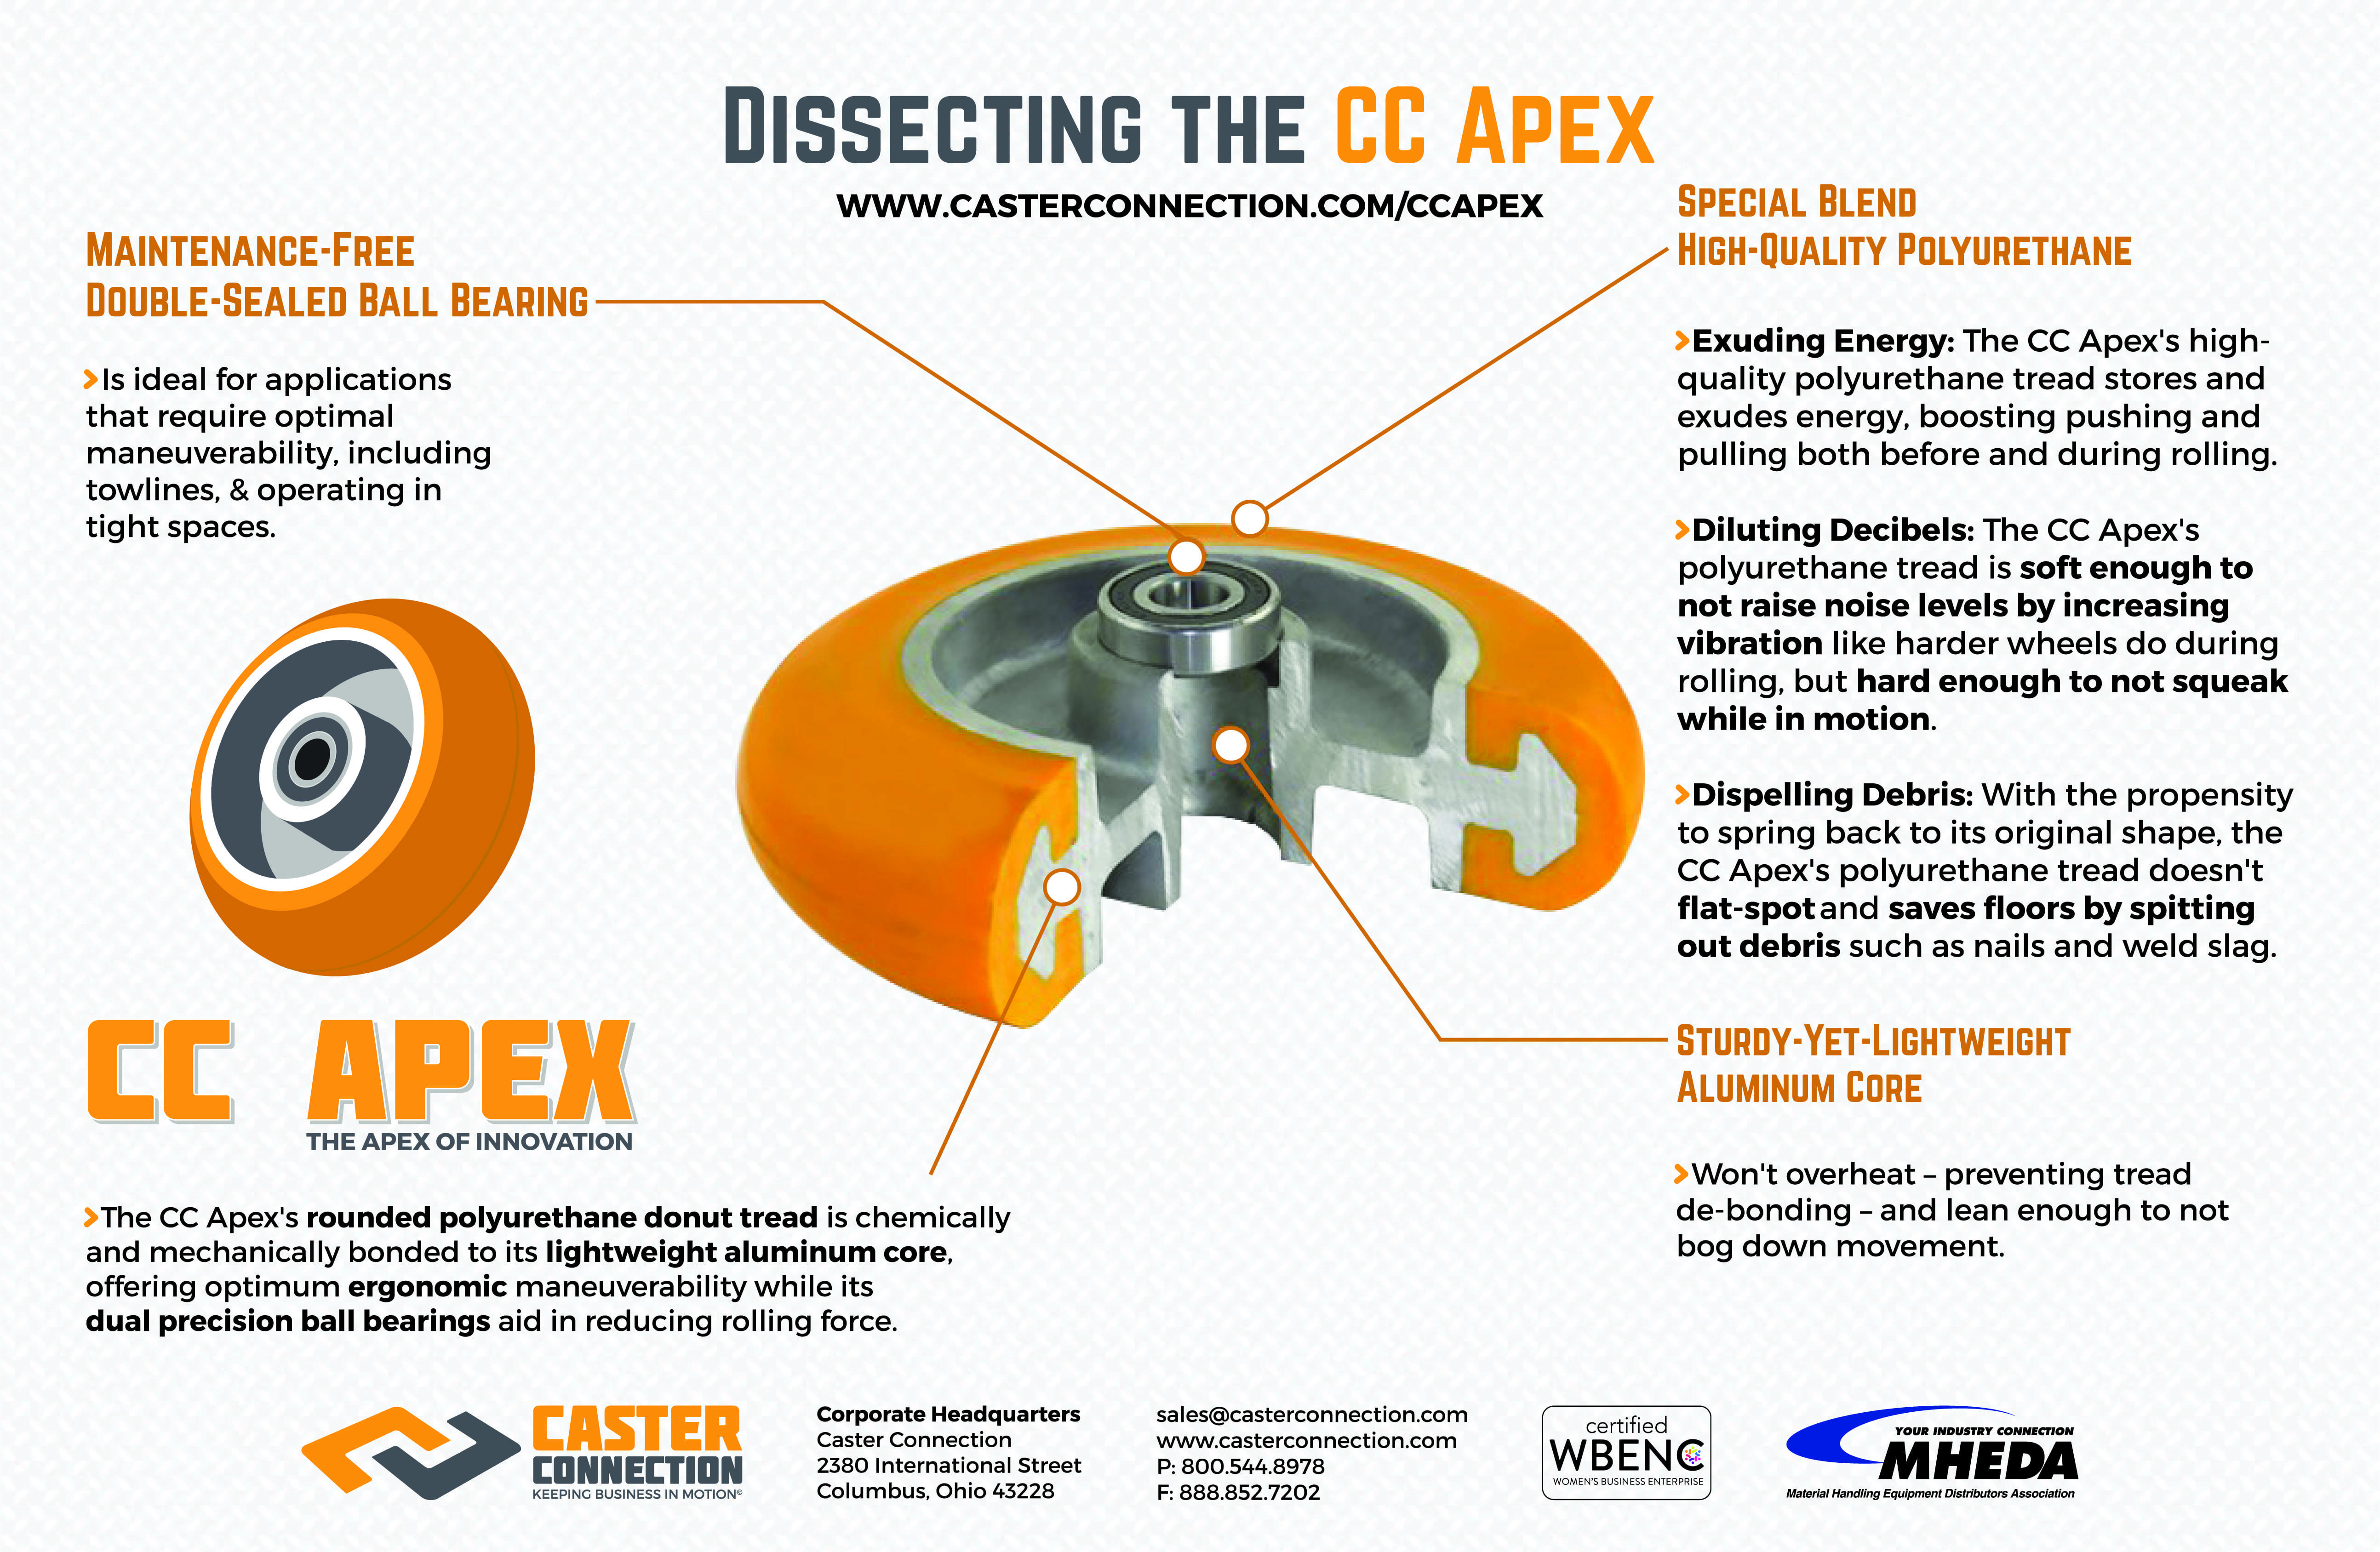 Dissecting the CC Apex